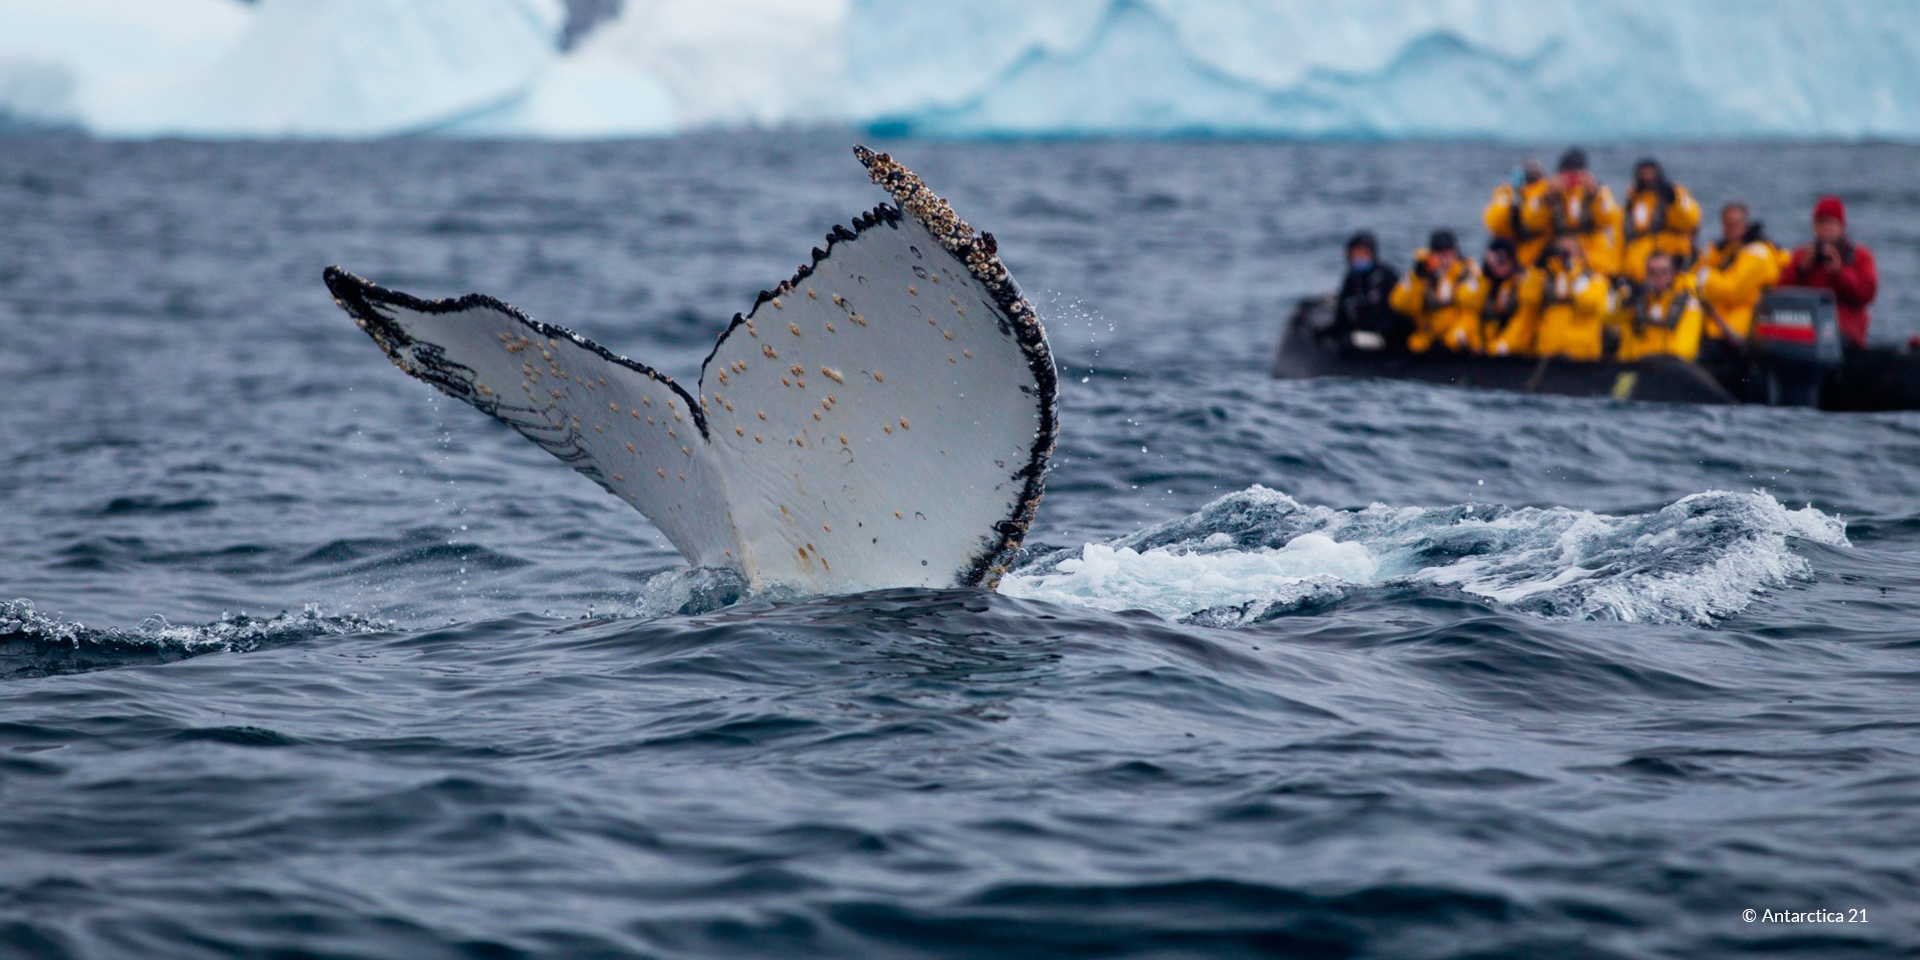 Personalized, tailor-made tour to see wildlife in Antarctica